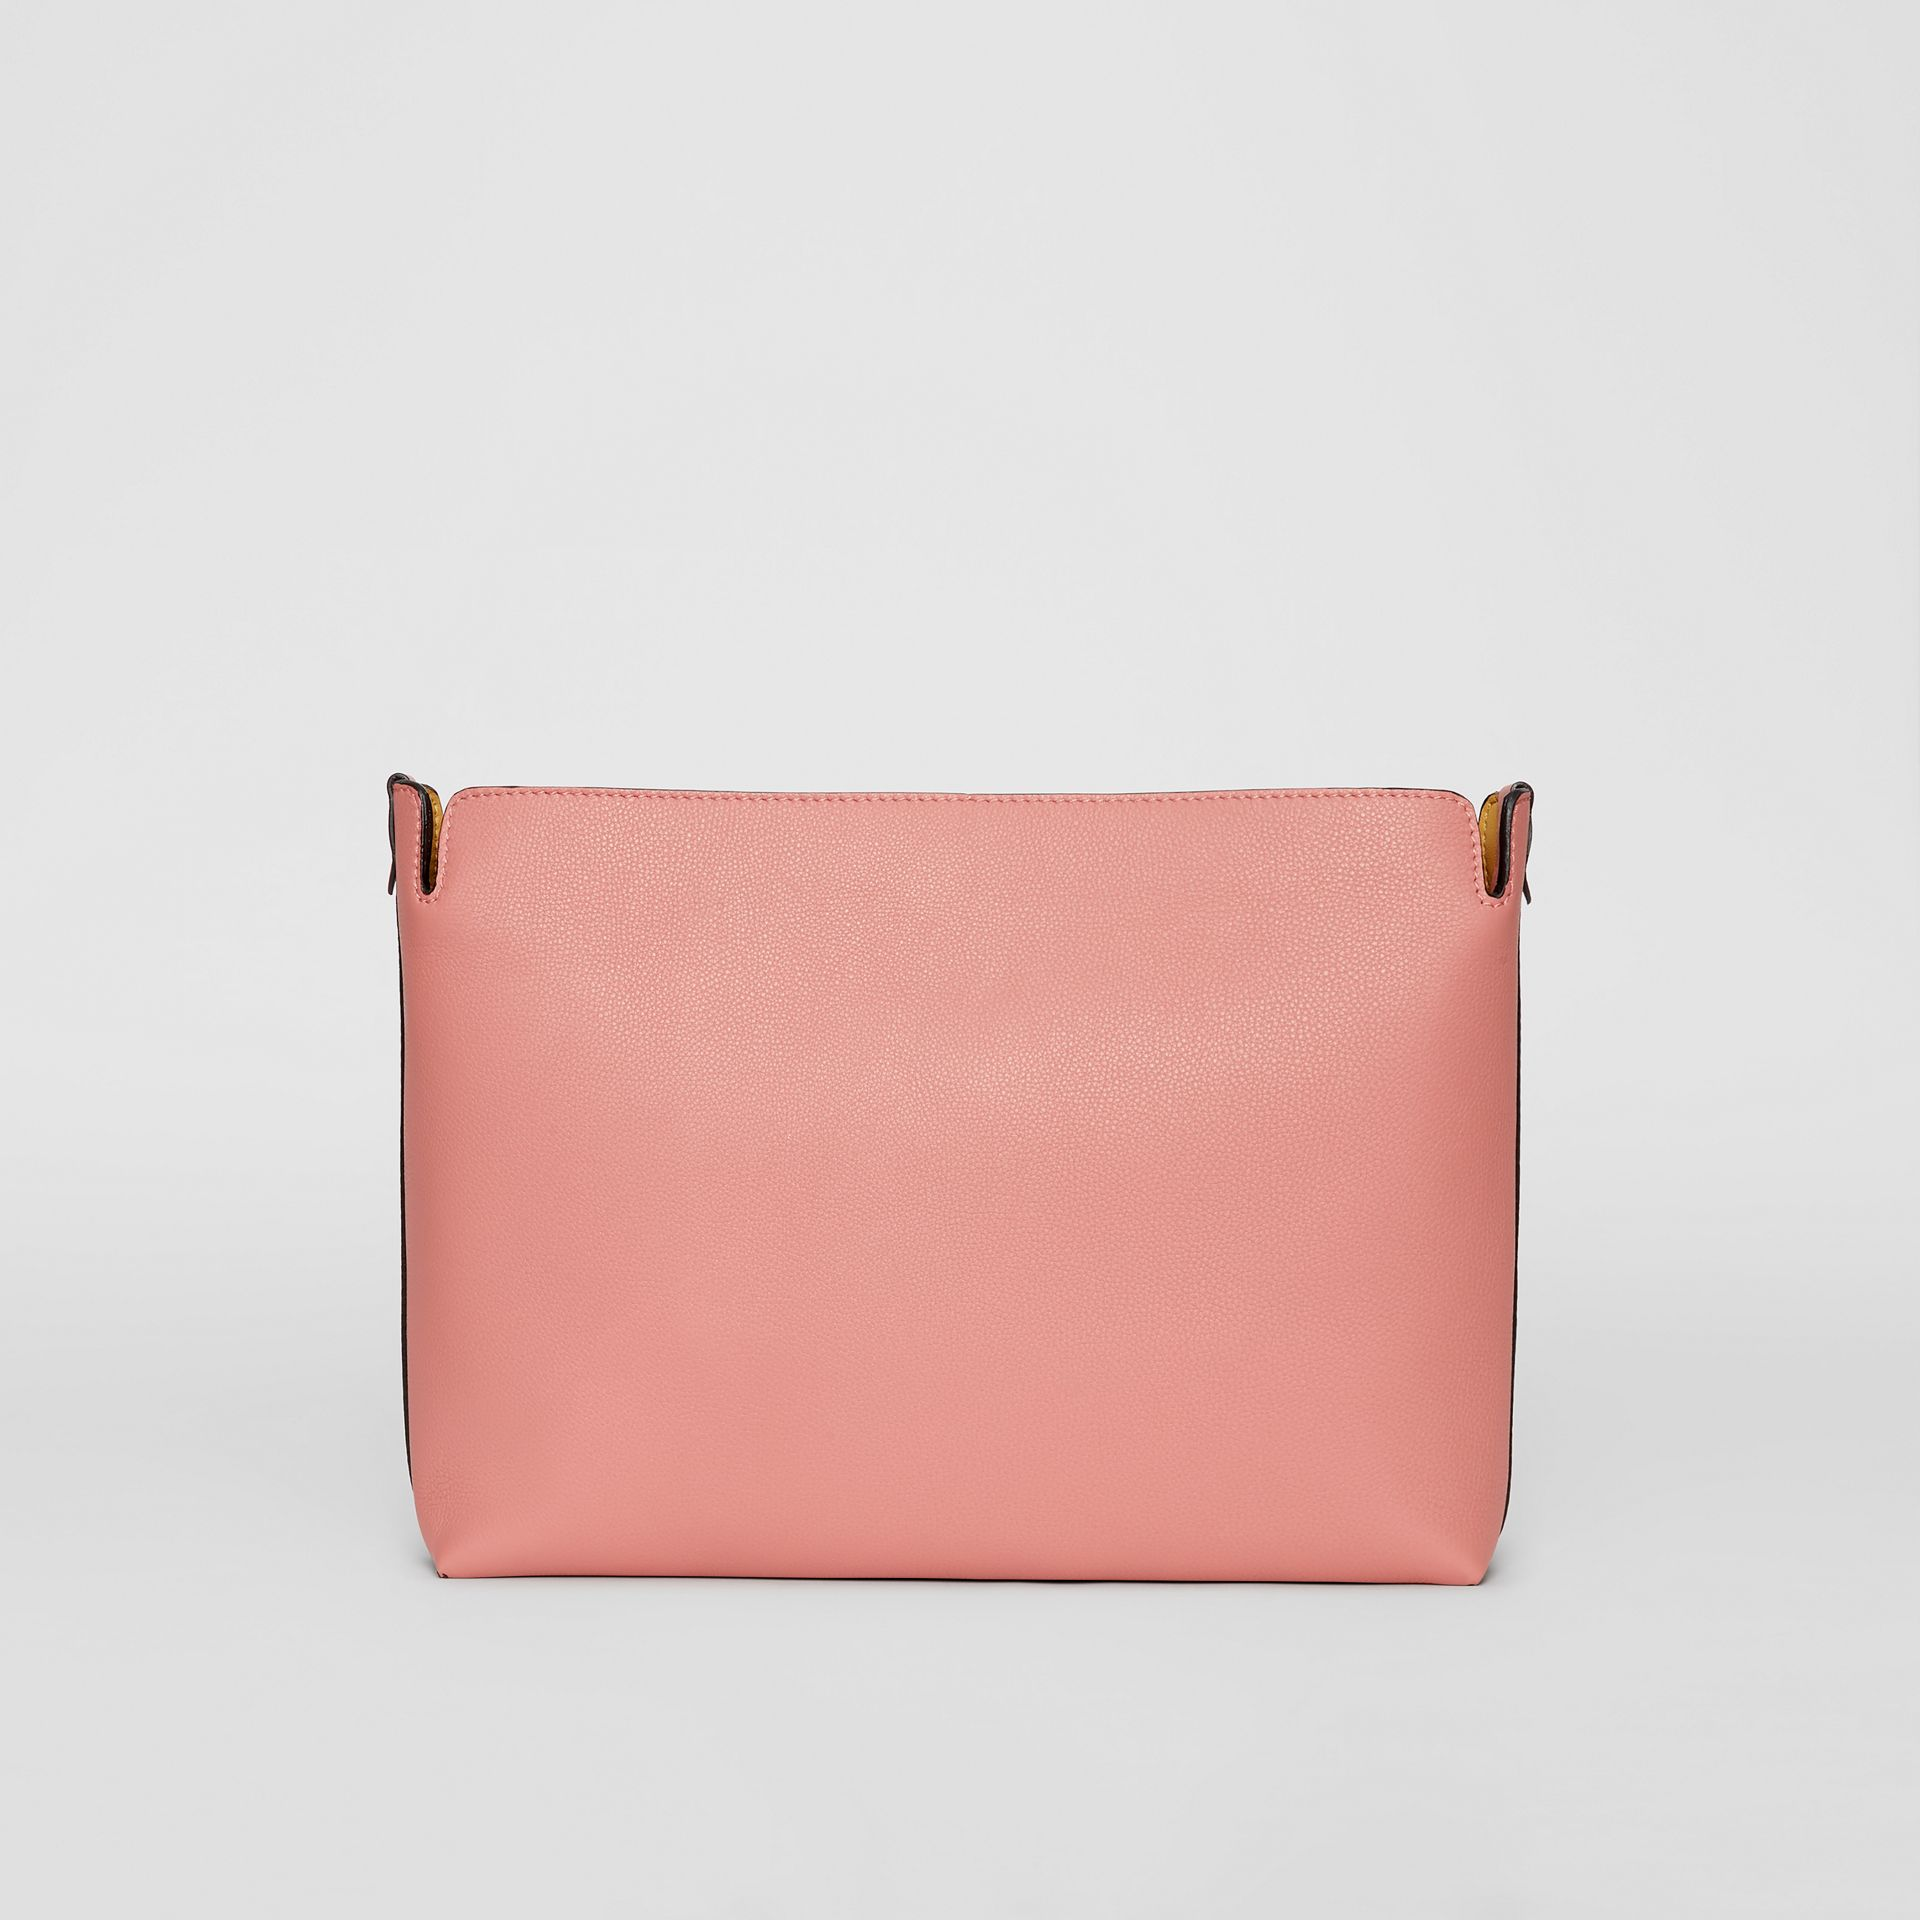 Large Tri-tone Leather Clutch in Deep Claret/dusty Rose - Women | Burberry United States - gallery image 5